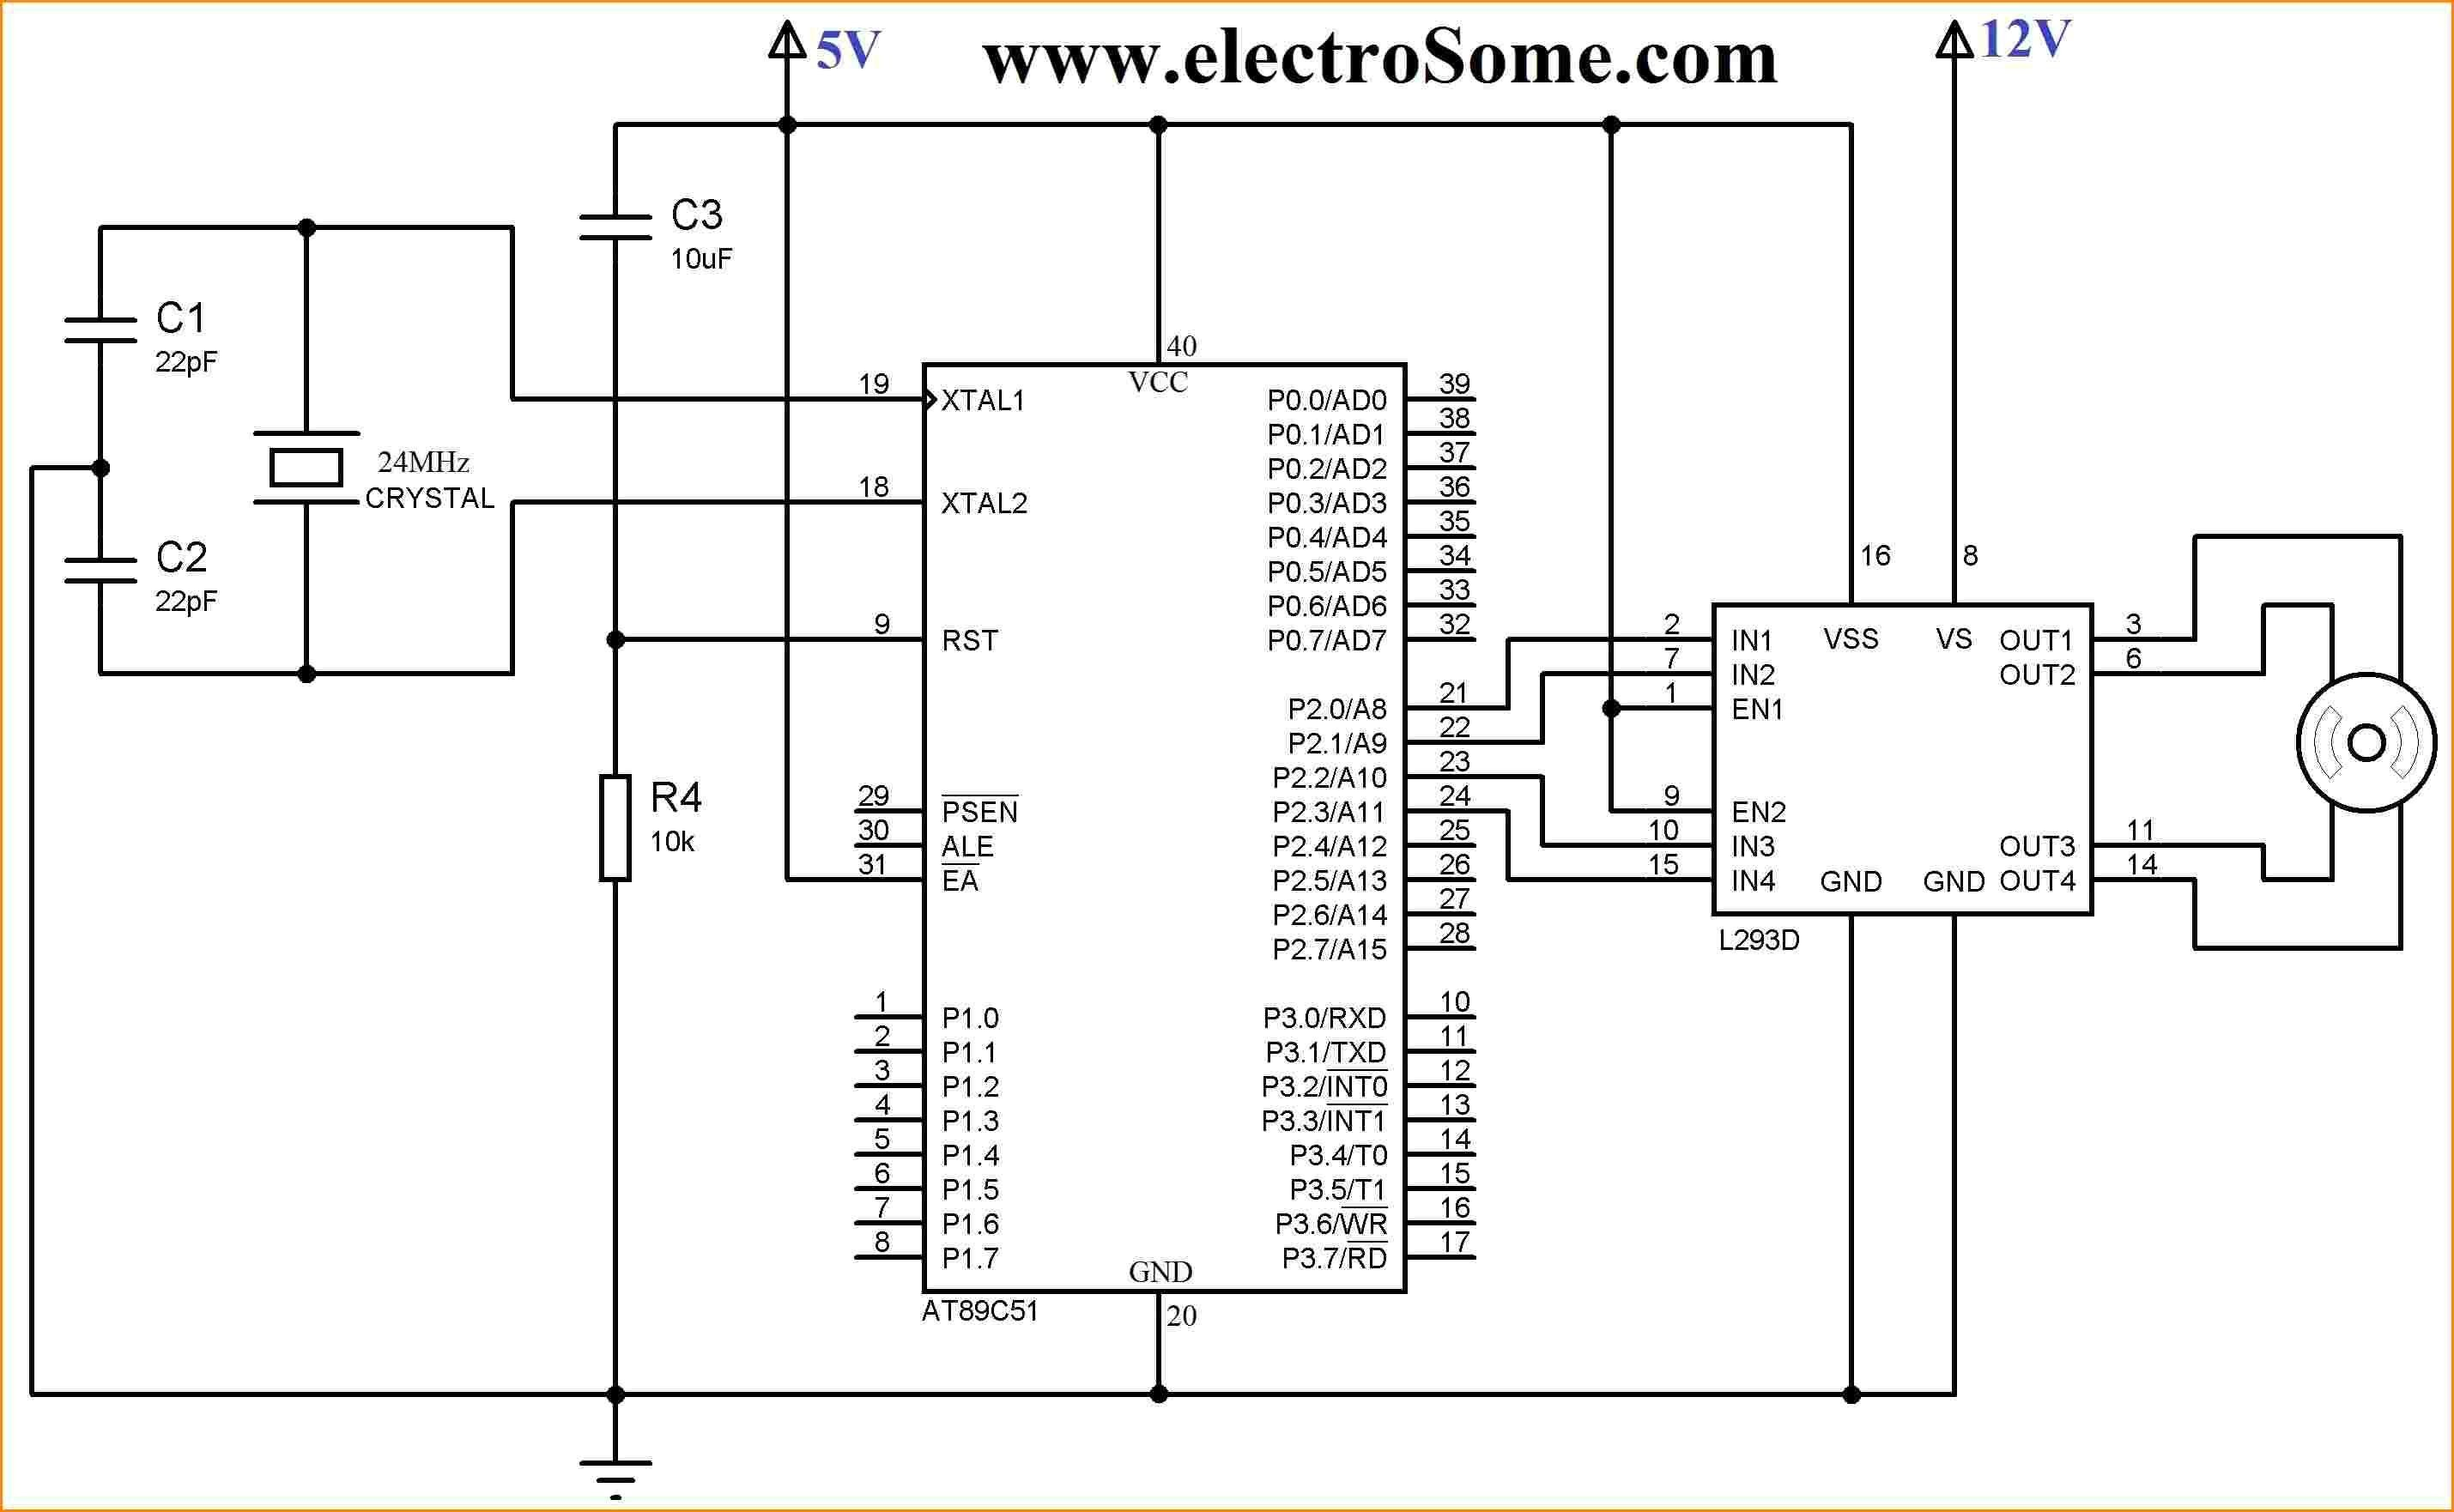 Cctv Balun Wiring Diagram Cctv Camera Wiring Diagram Image Of Cctv Balun Wiring Diagram